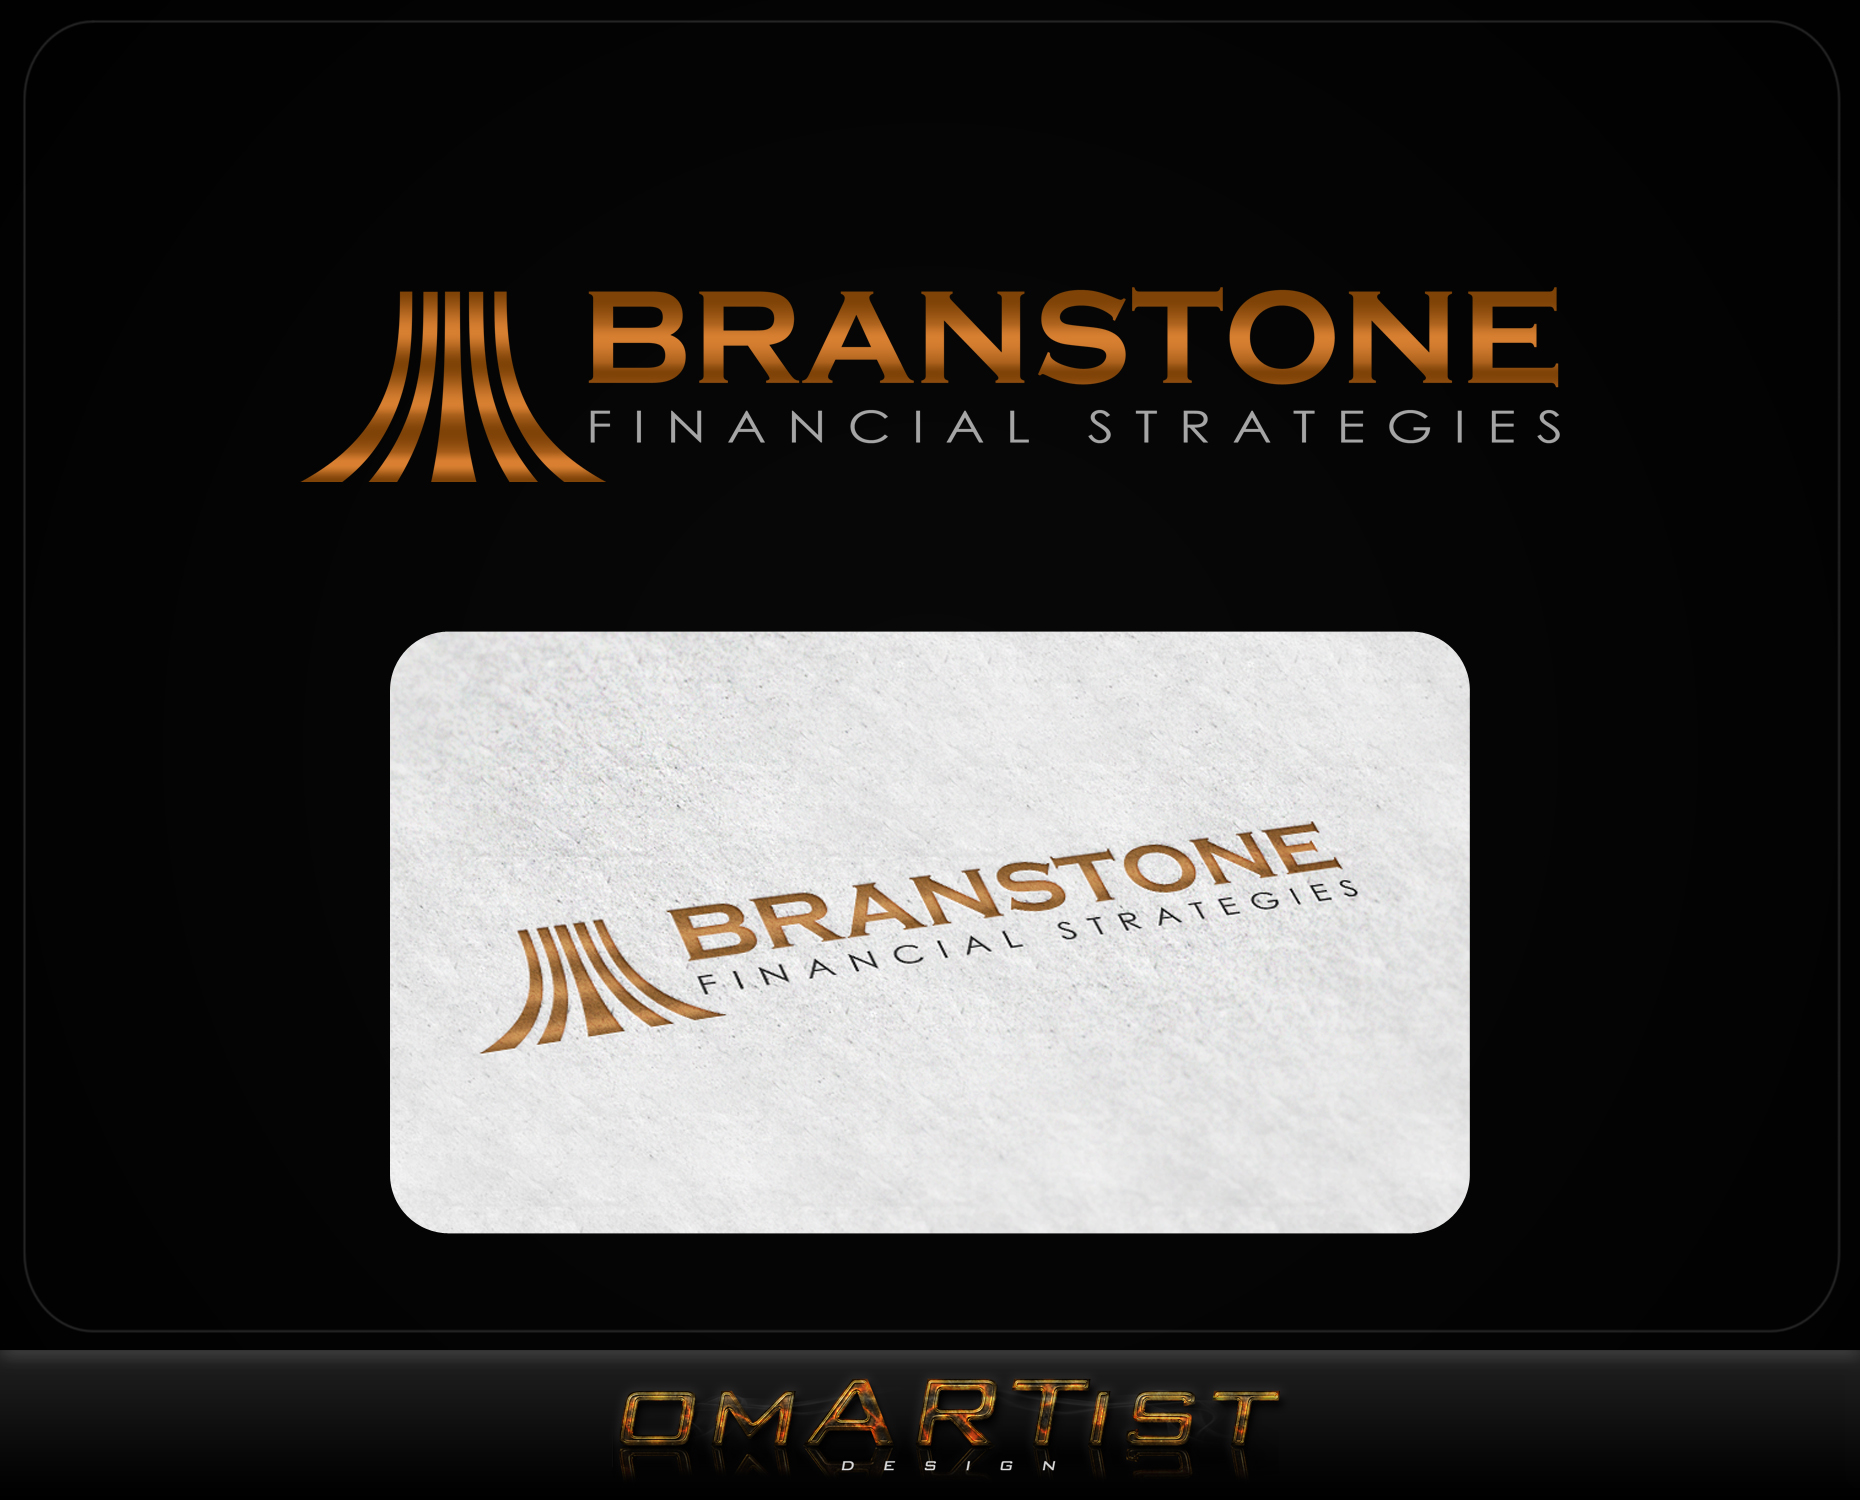 Logo Design by omARTist - Entry No. 196 in the Logo Design Contest Inspiring Logo Design for Branstone Financial Strategies.